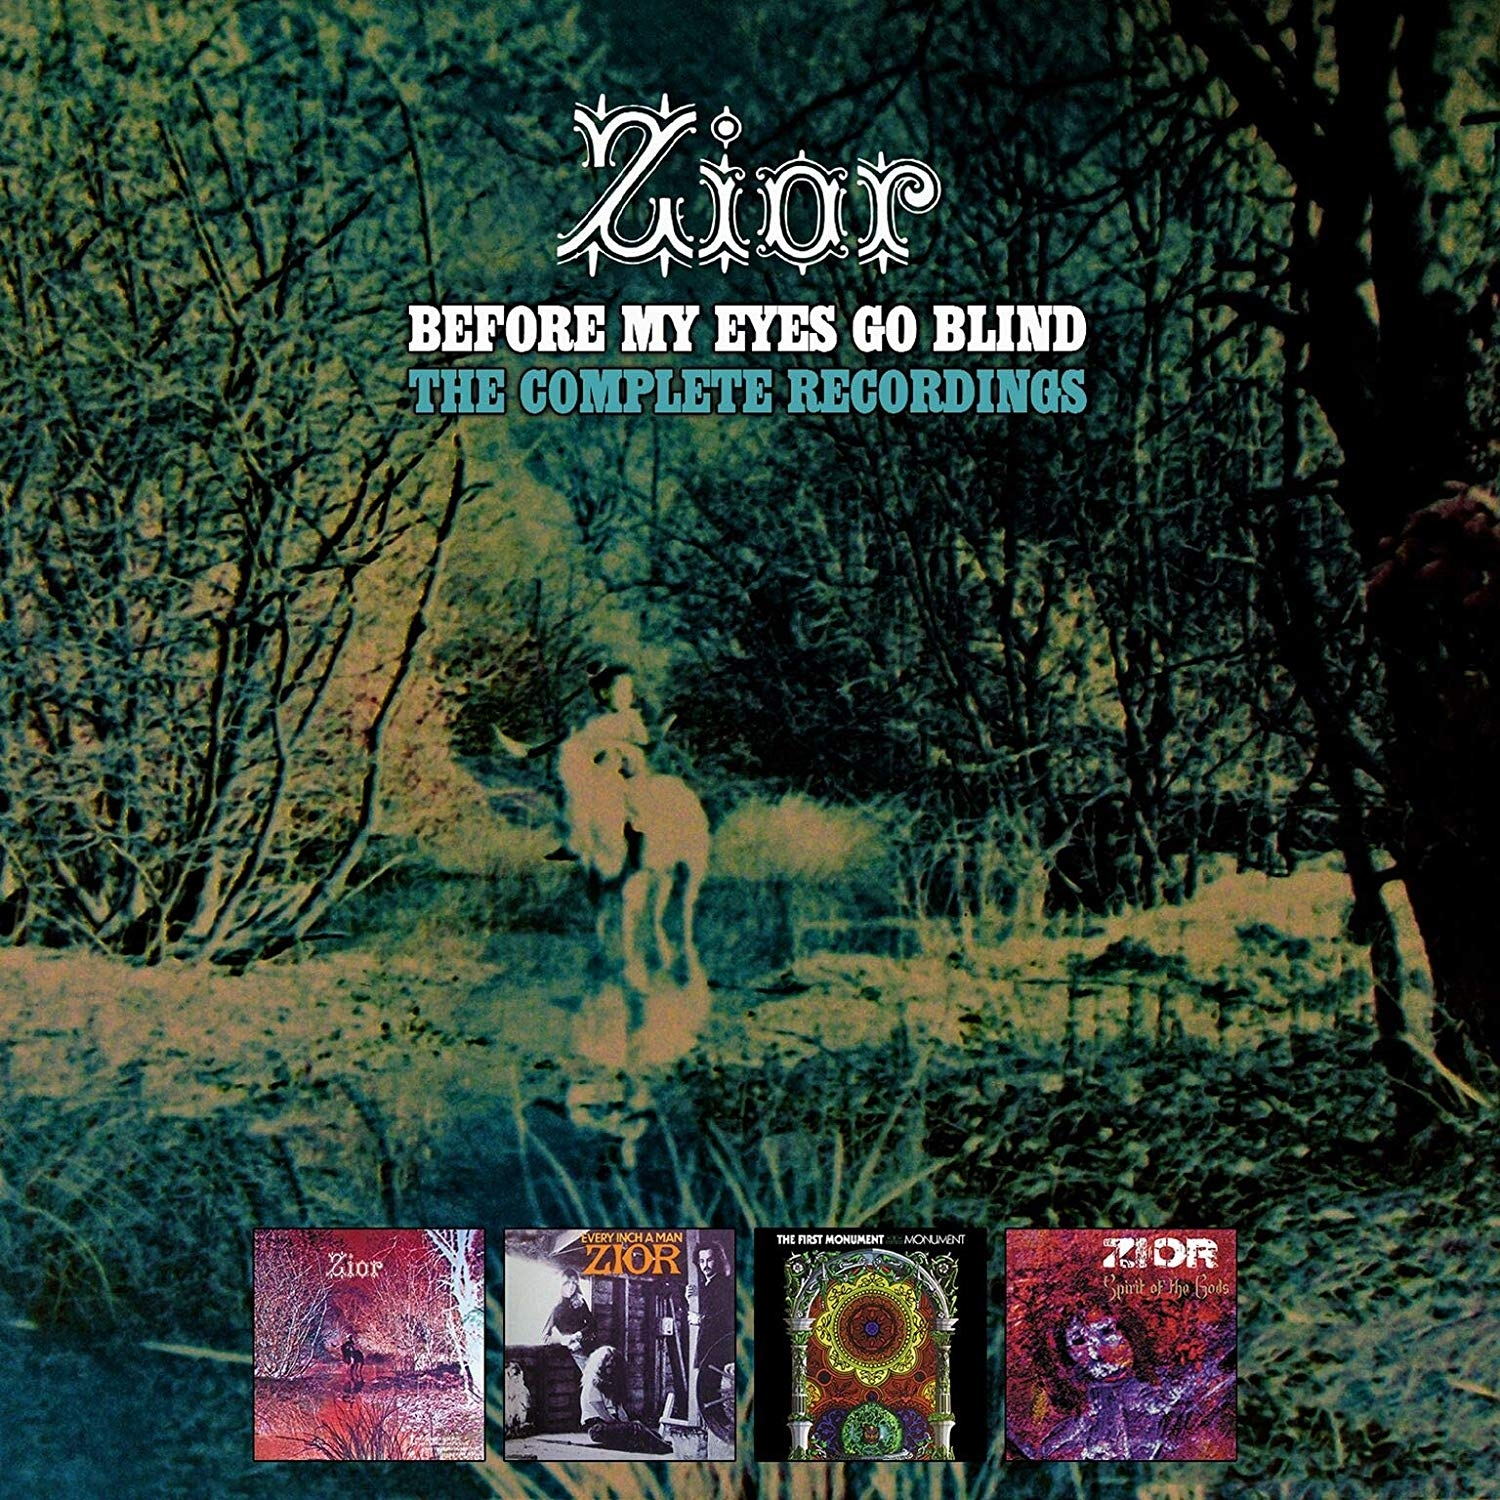 Before My Eyes Go Blind: The Complete Recordings